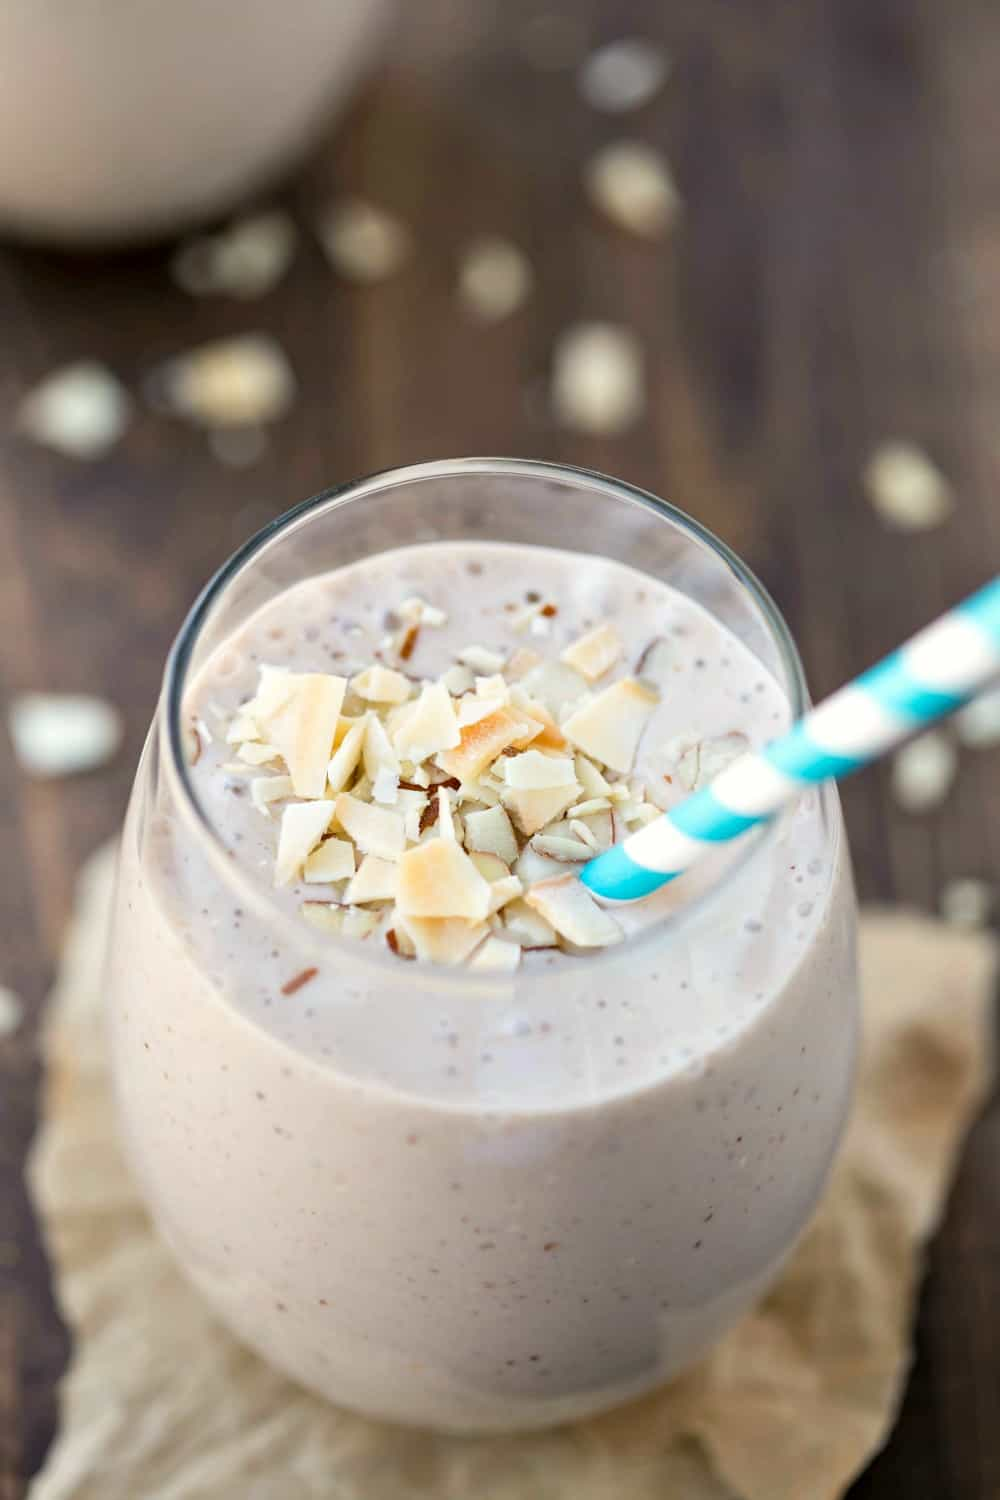 Chocolate Almond Coconut Banana Smoothie in a glass with a blue striped straw